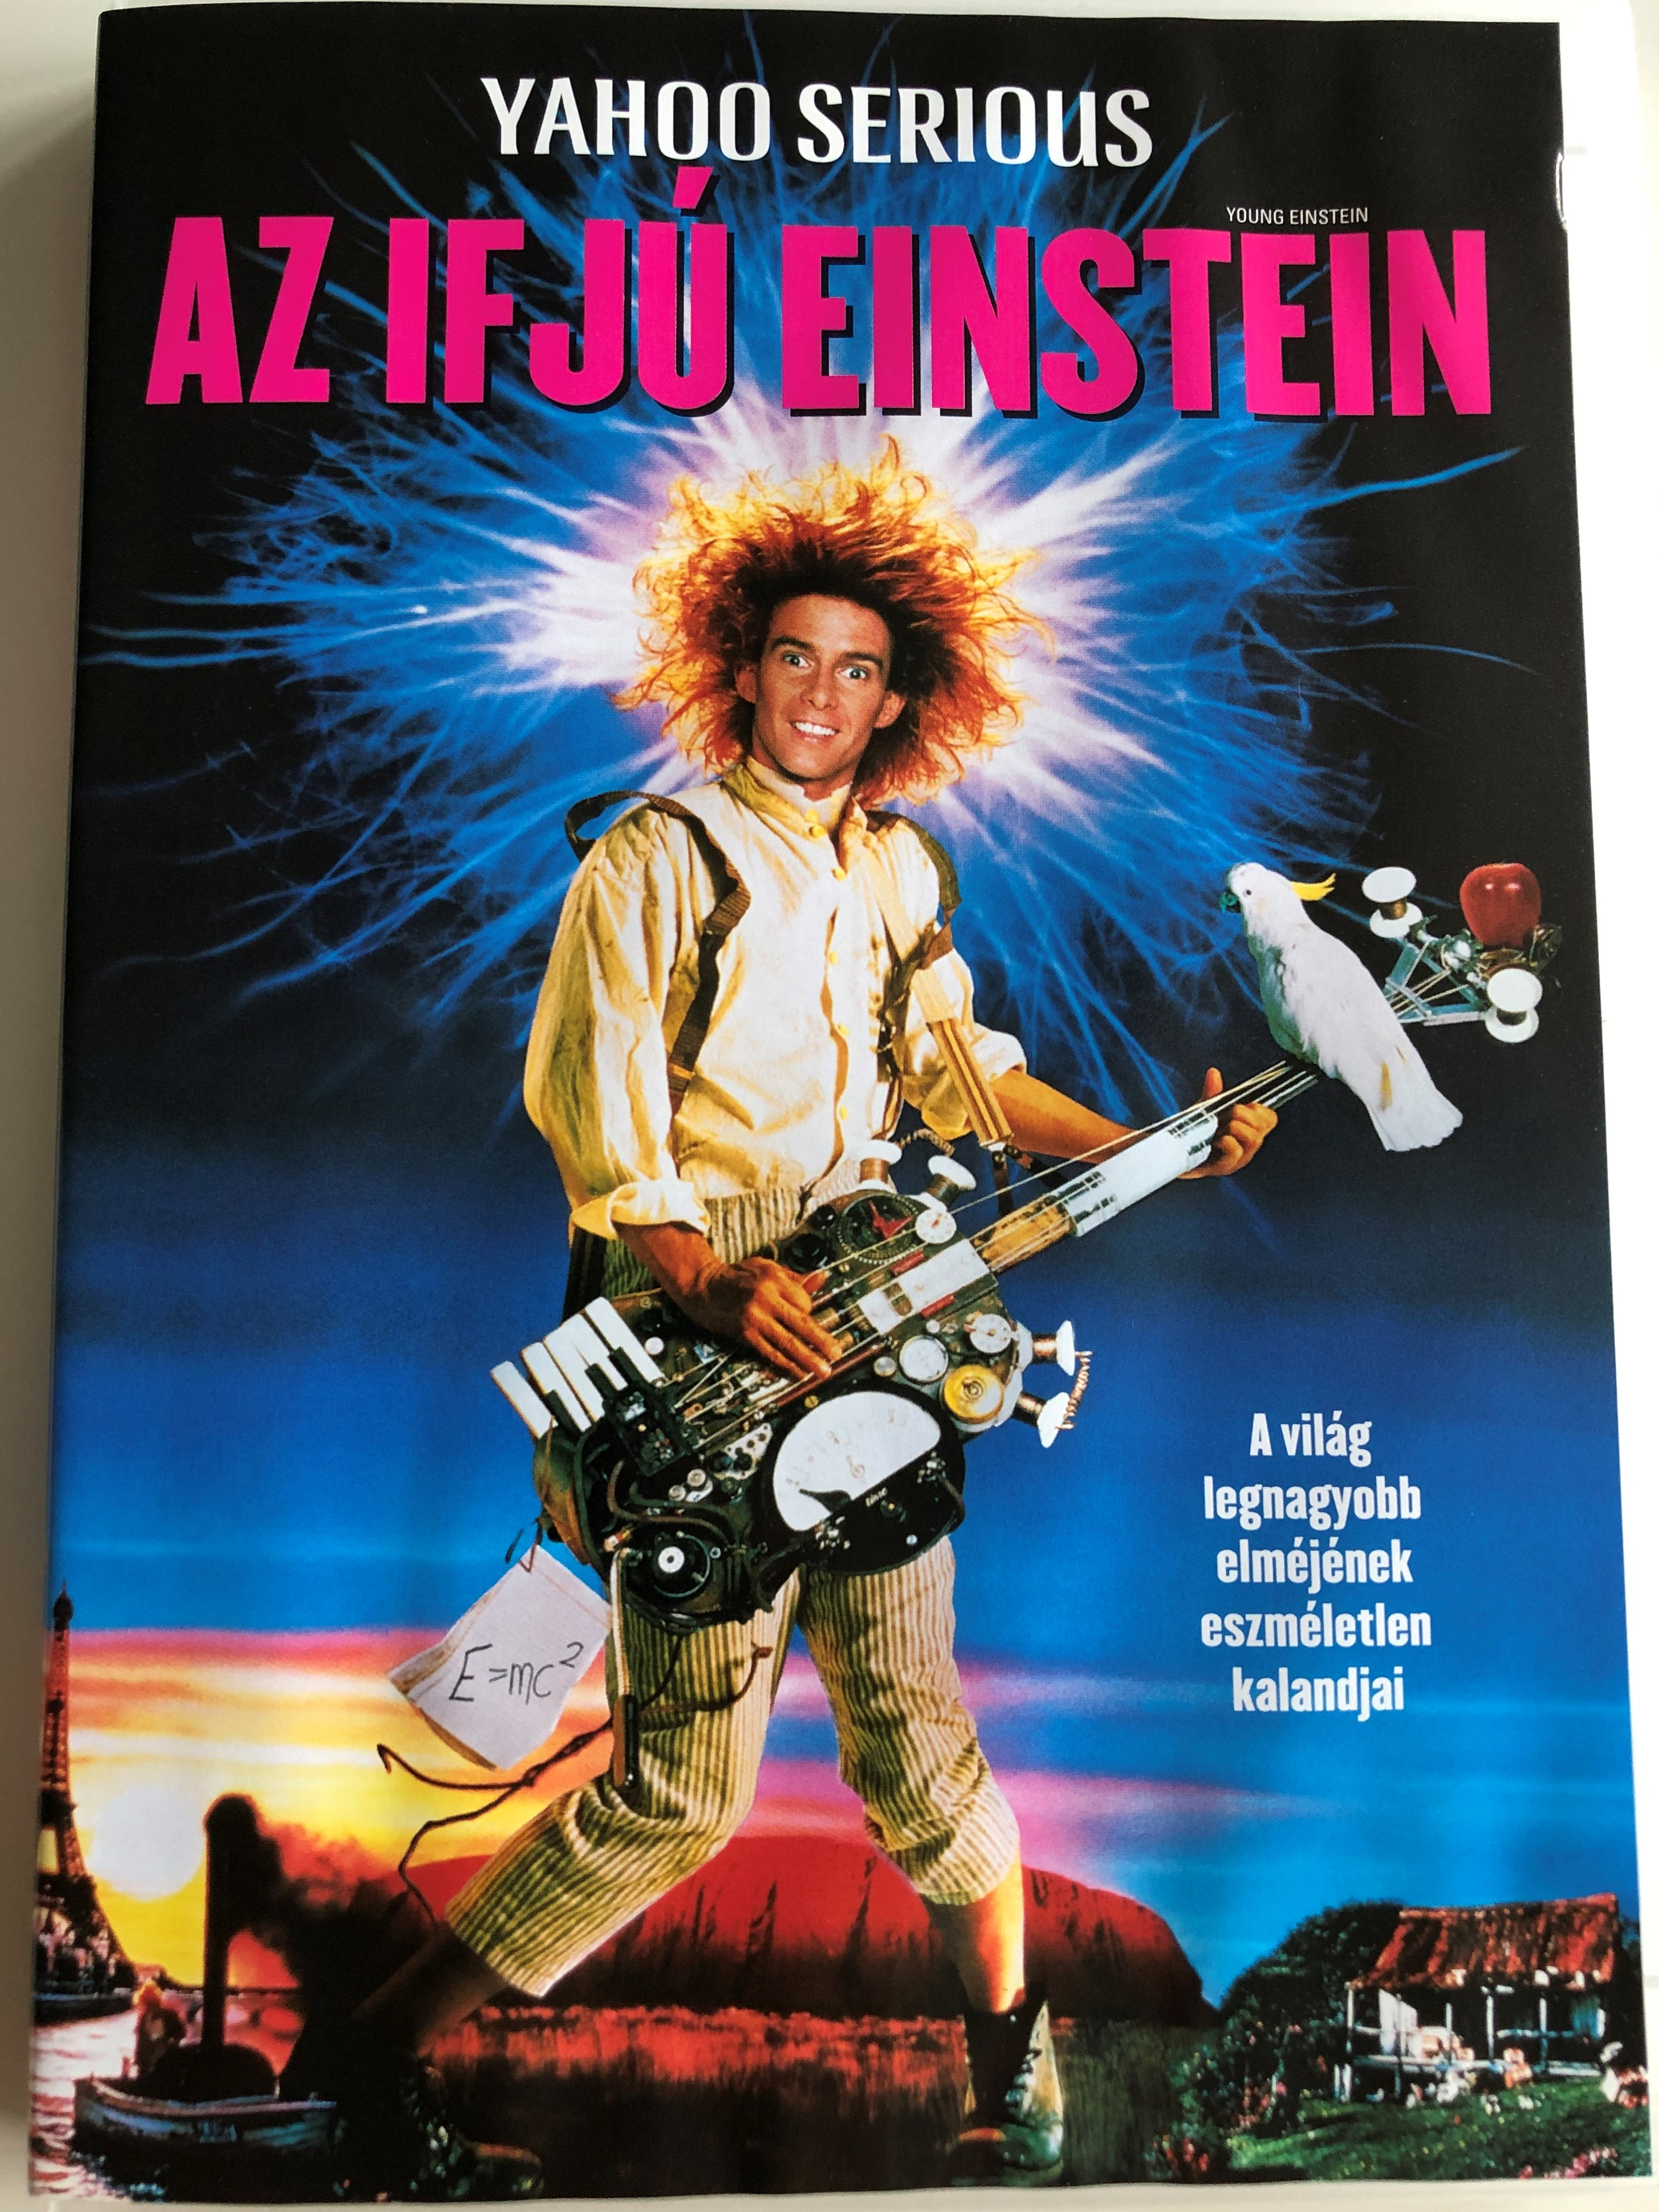 young-einstein-dvd-1988-az-ifj-einstein-directed-by-yahoo-serious-starring-yahoo-serious-odile-le-clezio-john-howard-1-.jpg